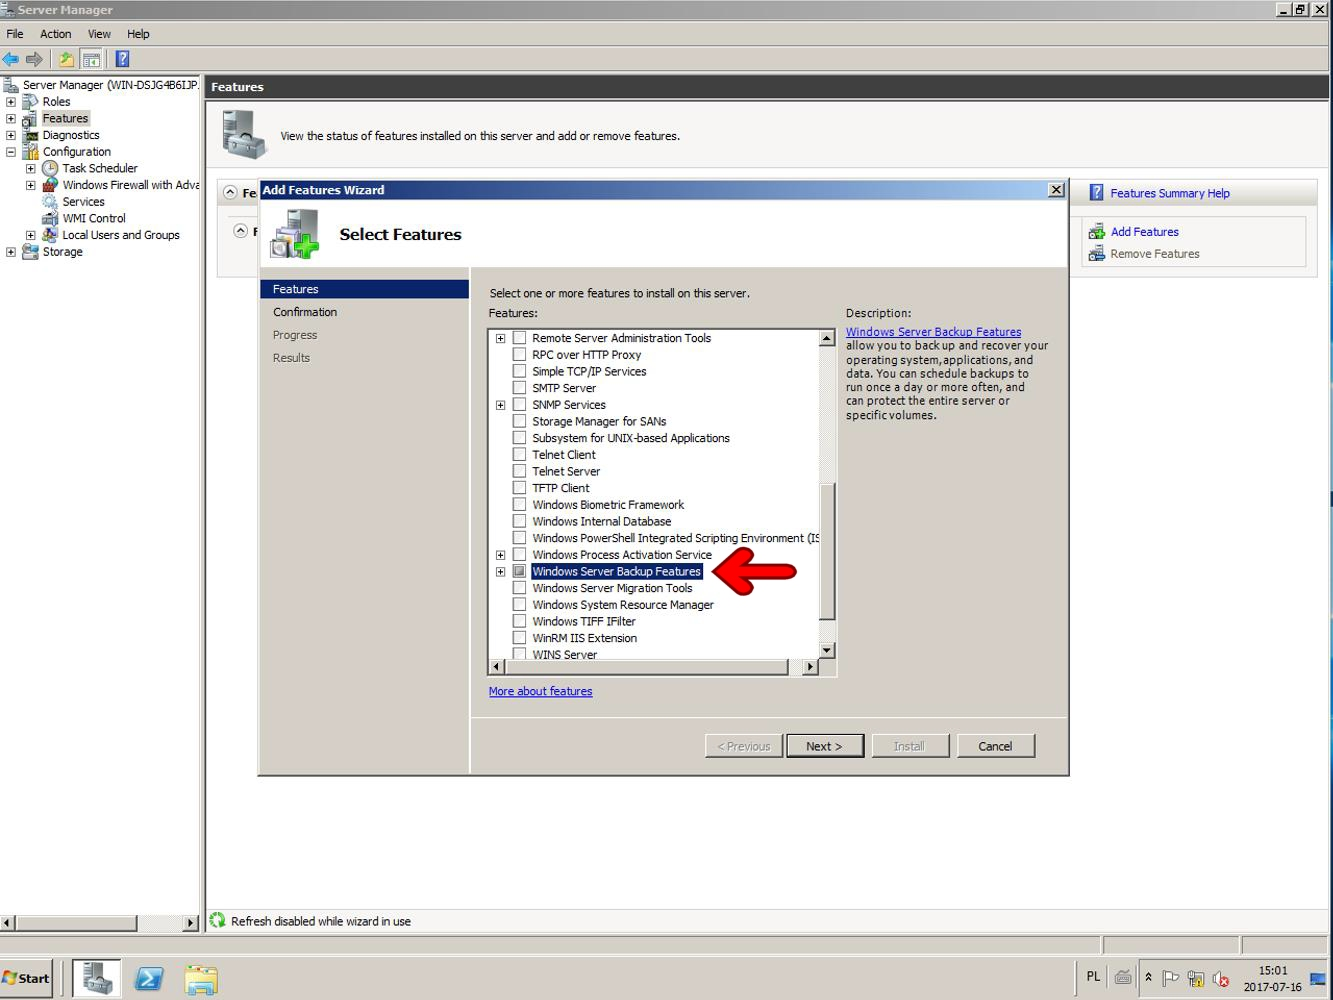 Windows Server backup features 2008